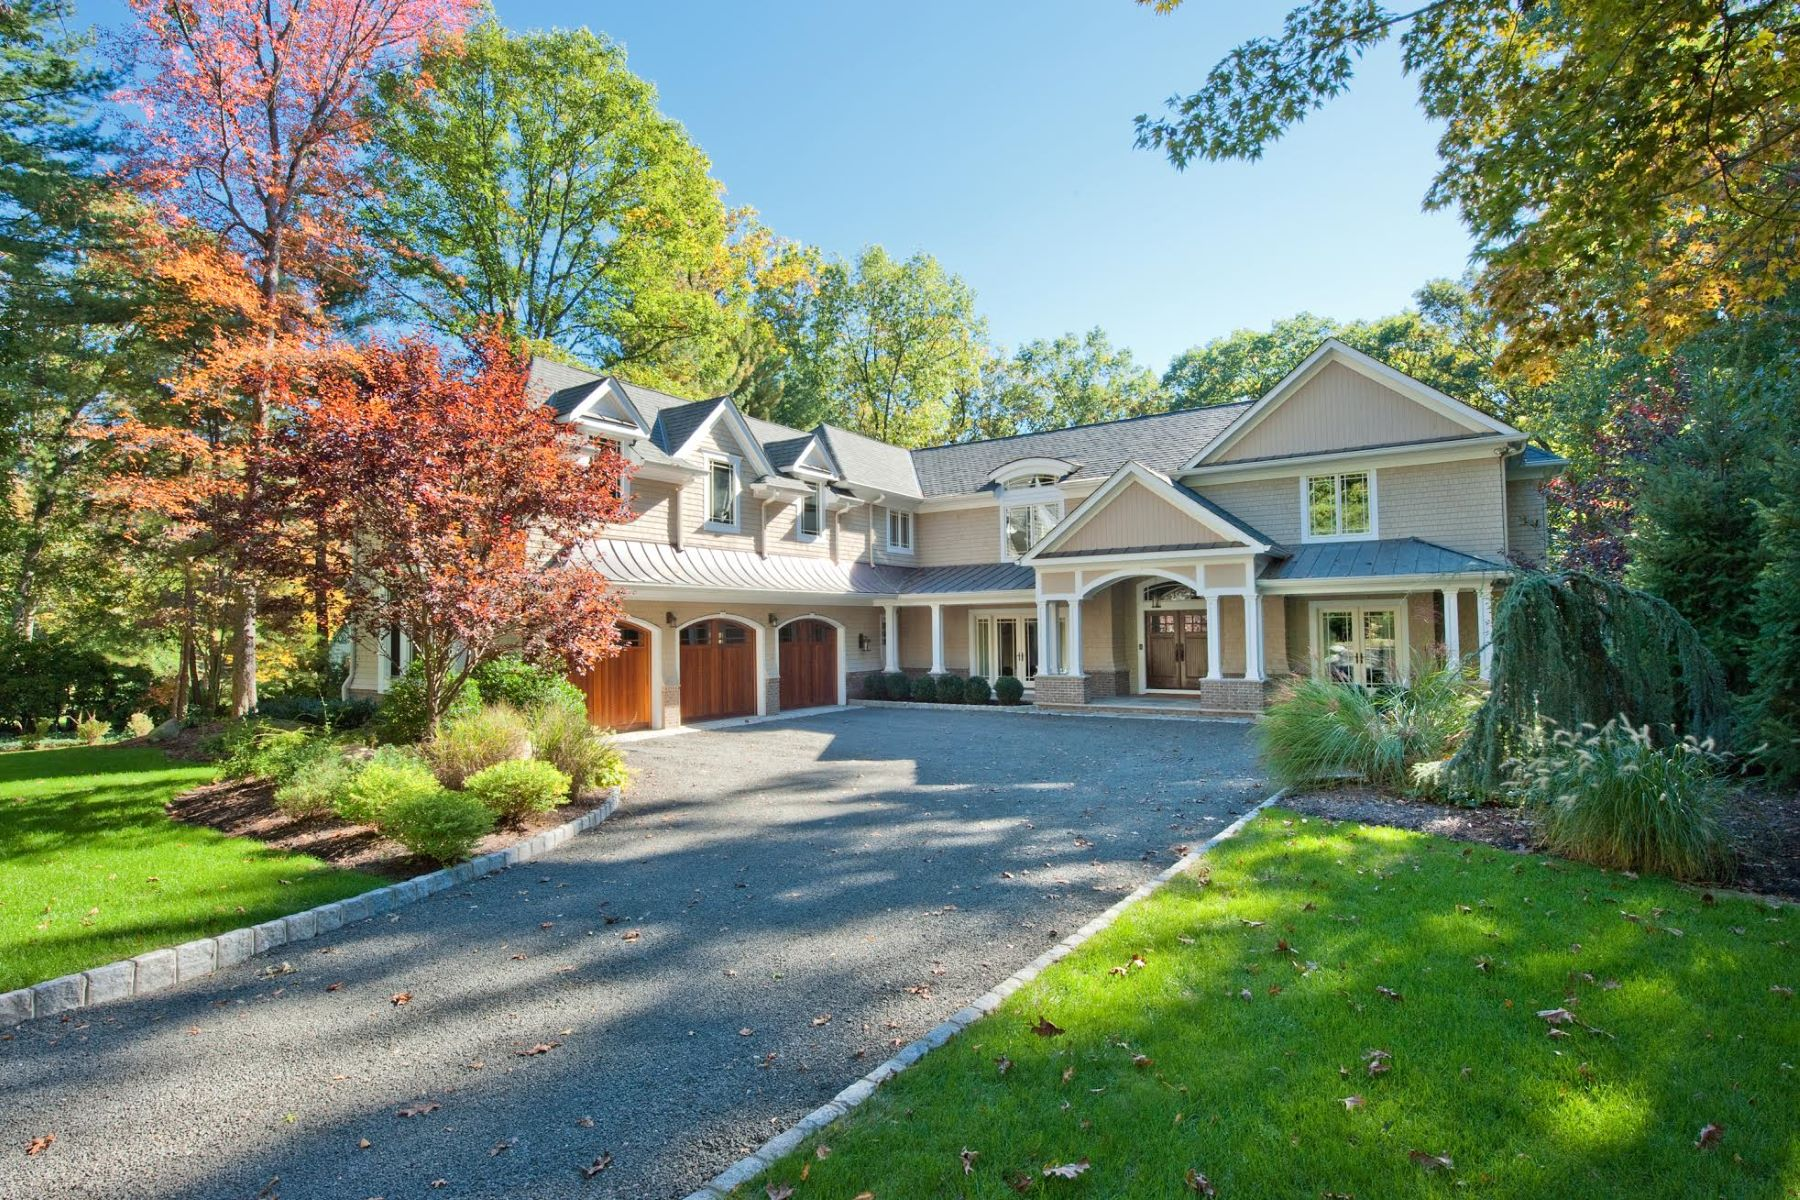 Single Family Home for Sale at Elegance 96 Dimmig Road Upper Saddle River, 07458 United States